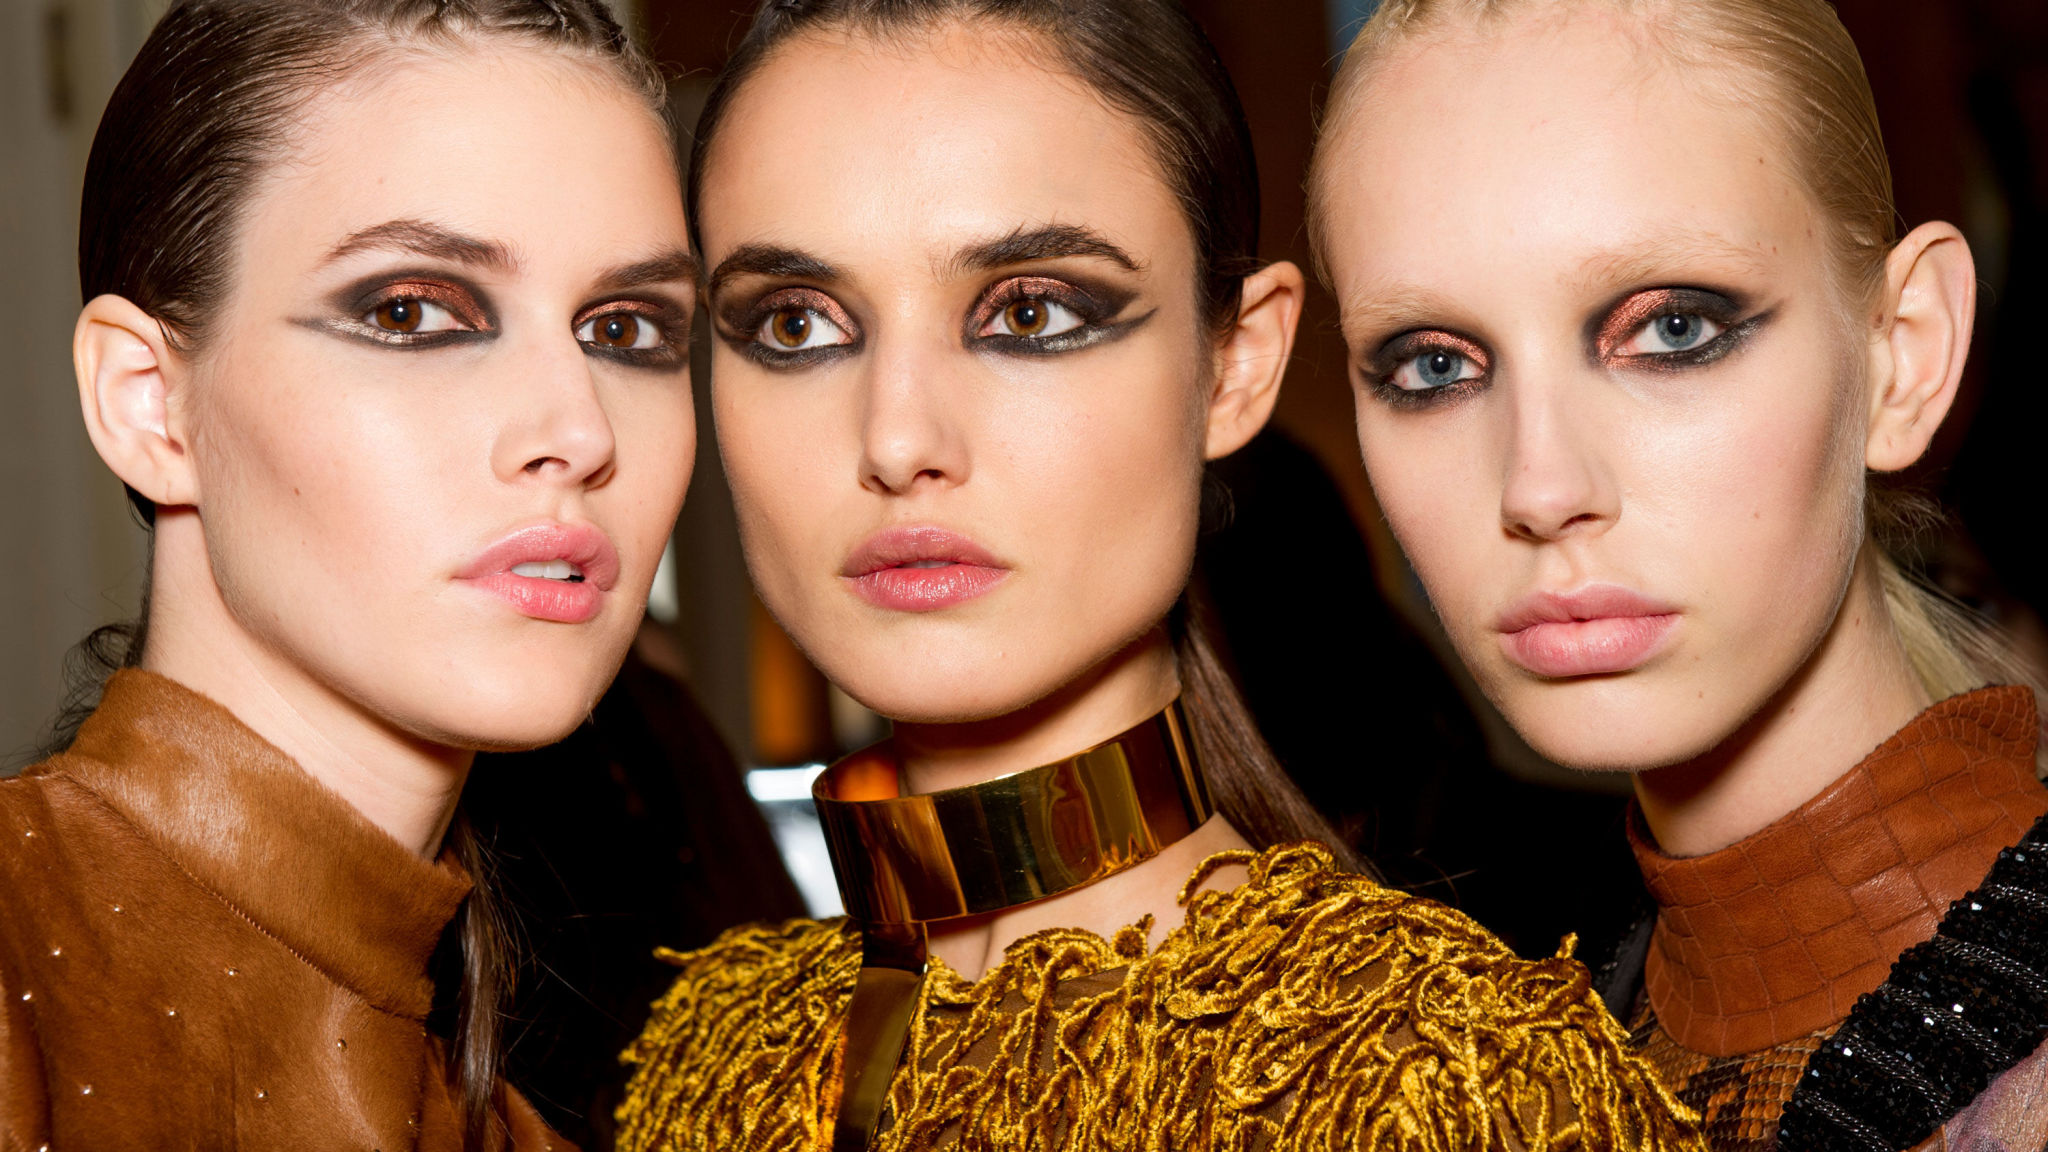 Autumn Winter 2017 Hair And Make Up Trends From Pink Eyeshadow To Proud Brows